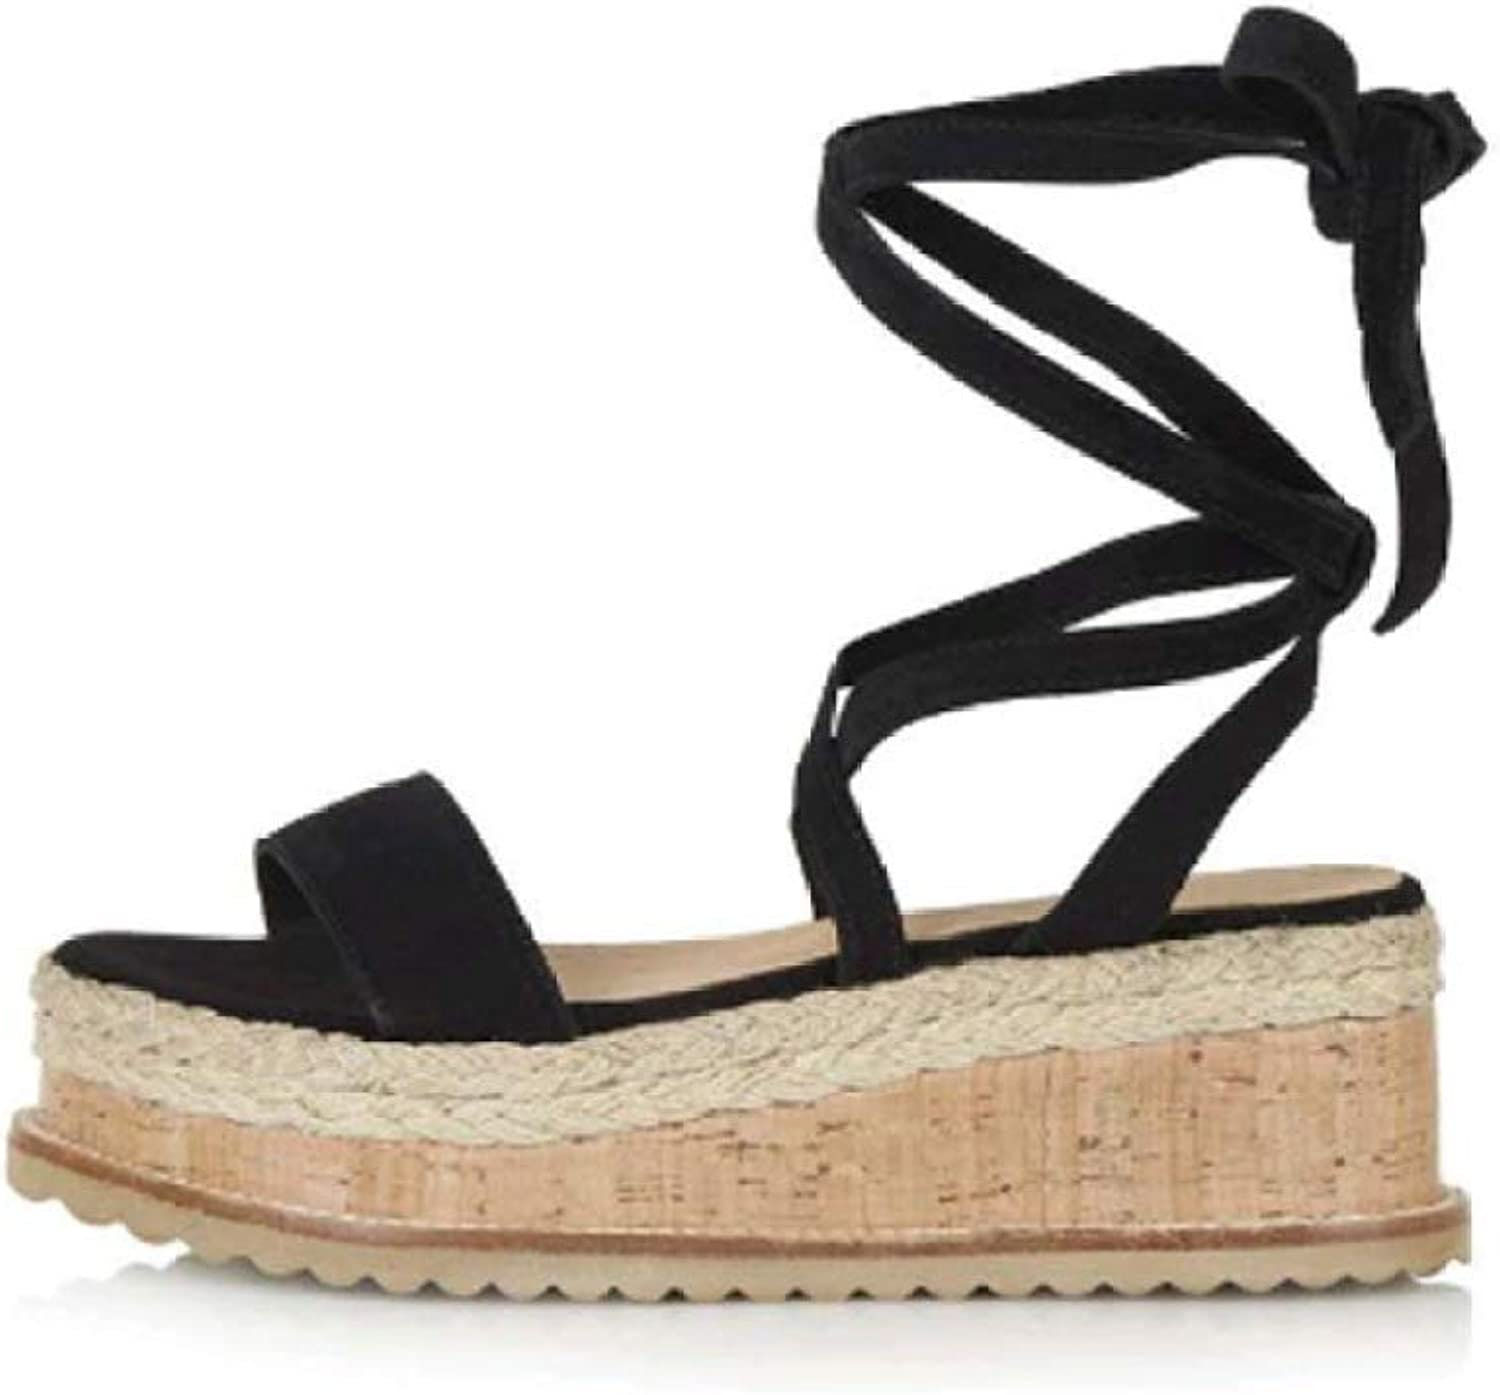 Hoxekle Woman Casual Straw Hemp Rope Wedge Platform Sandals Rome Cross Strap Open-Toe Thick Sole shoes